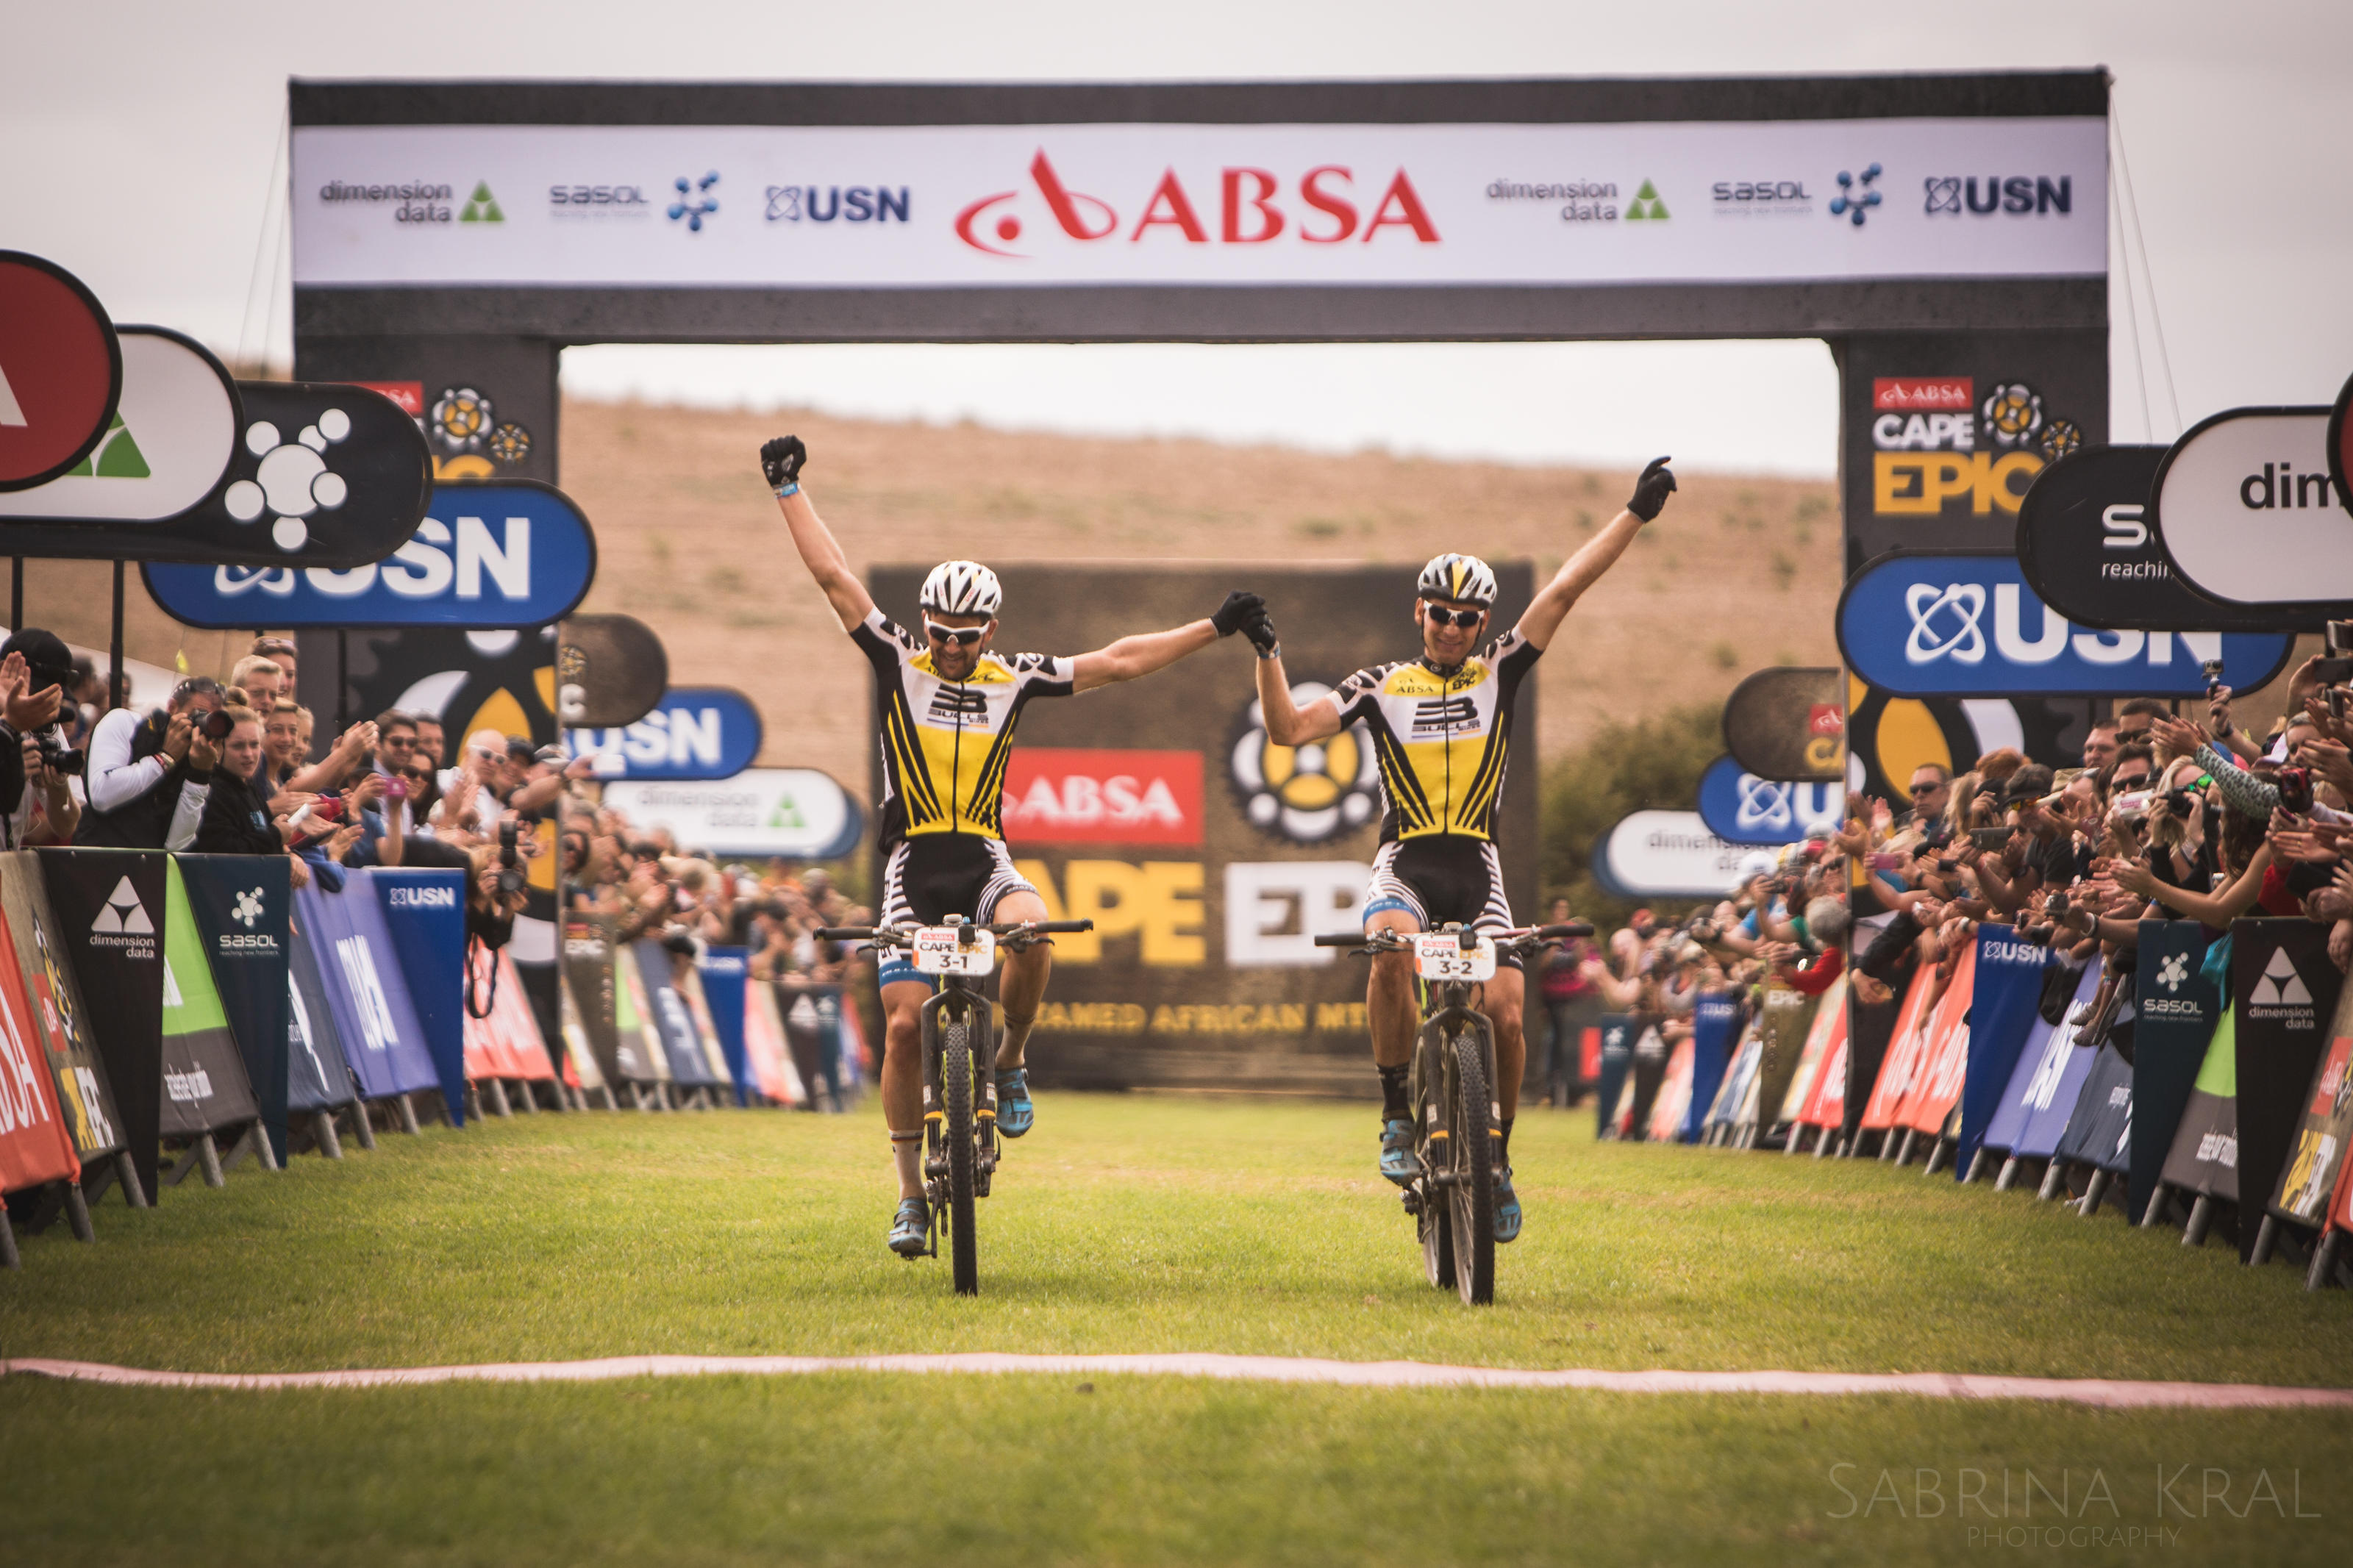 Karl and his partner at the finish line of the Cape Epic. Image ©: Sportograf